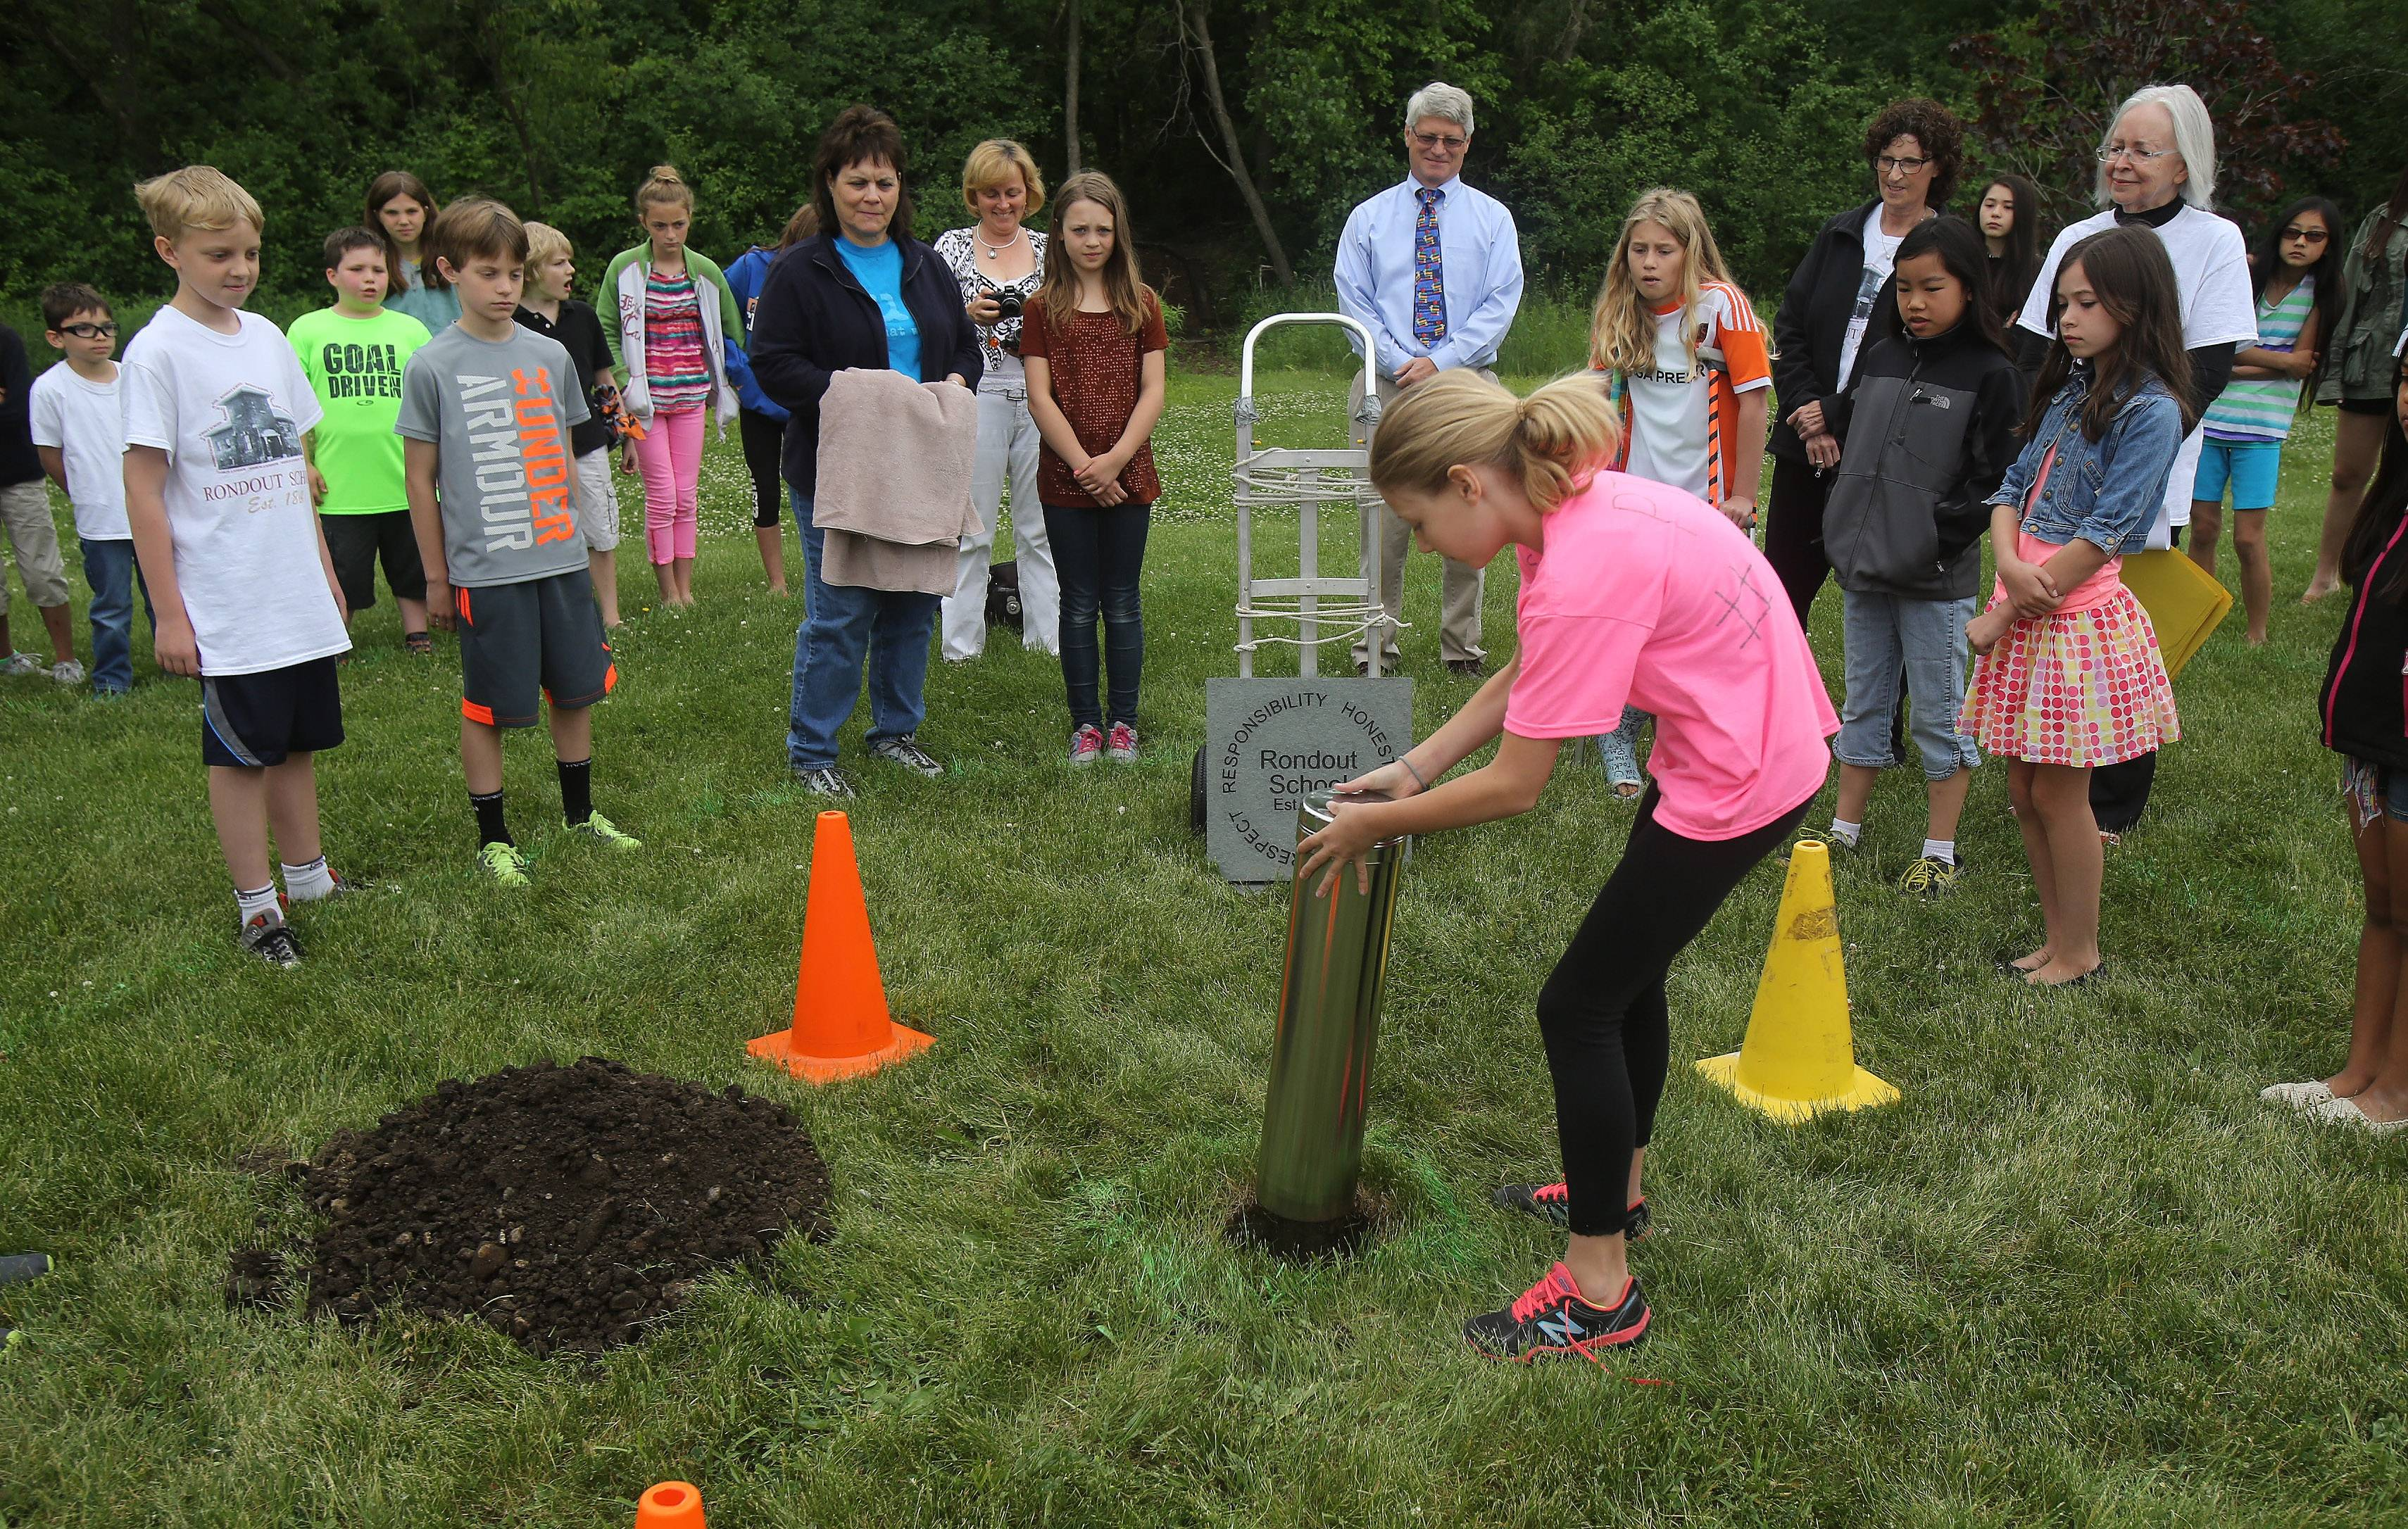 Rondout Elementary School fifth-grader Pia Bettridge puts a time capsule in the ground as part of the school's sesquicentennial celebration. Some of the items inside included a flash drive, cellphone, newspaper, Post-it's, a Toobaloo and the school mascot Falcon toy.